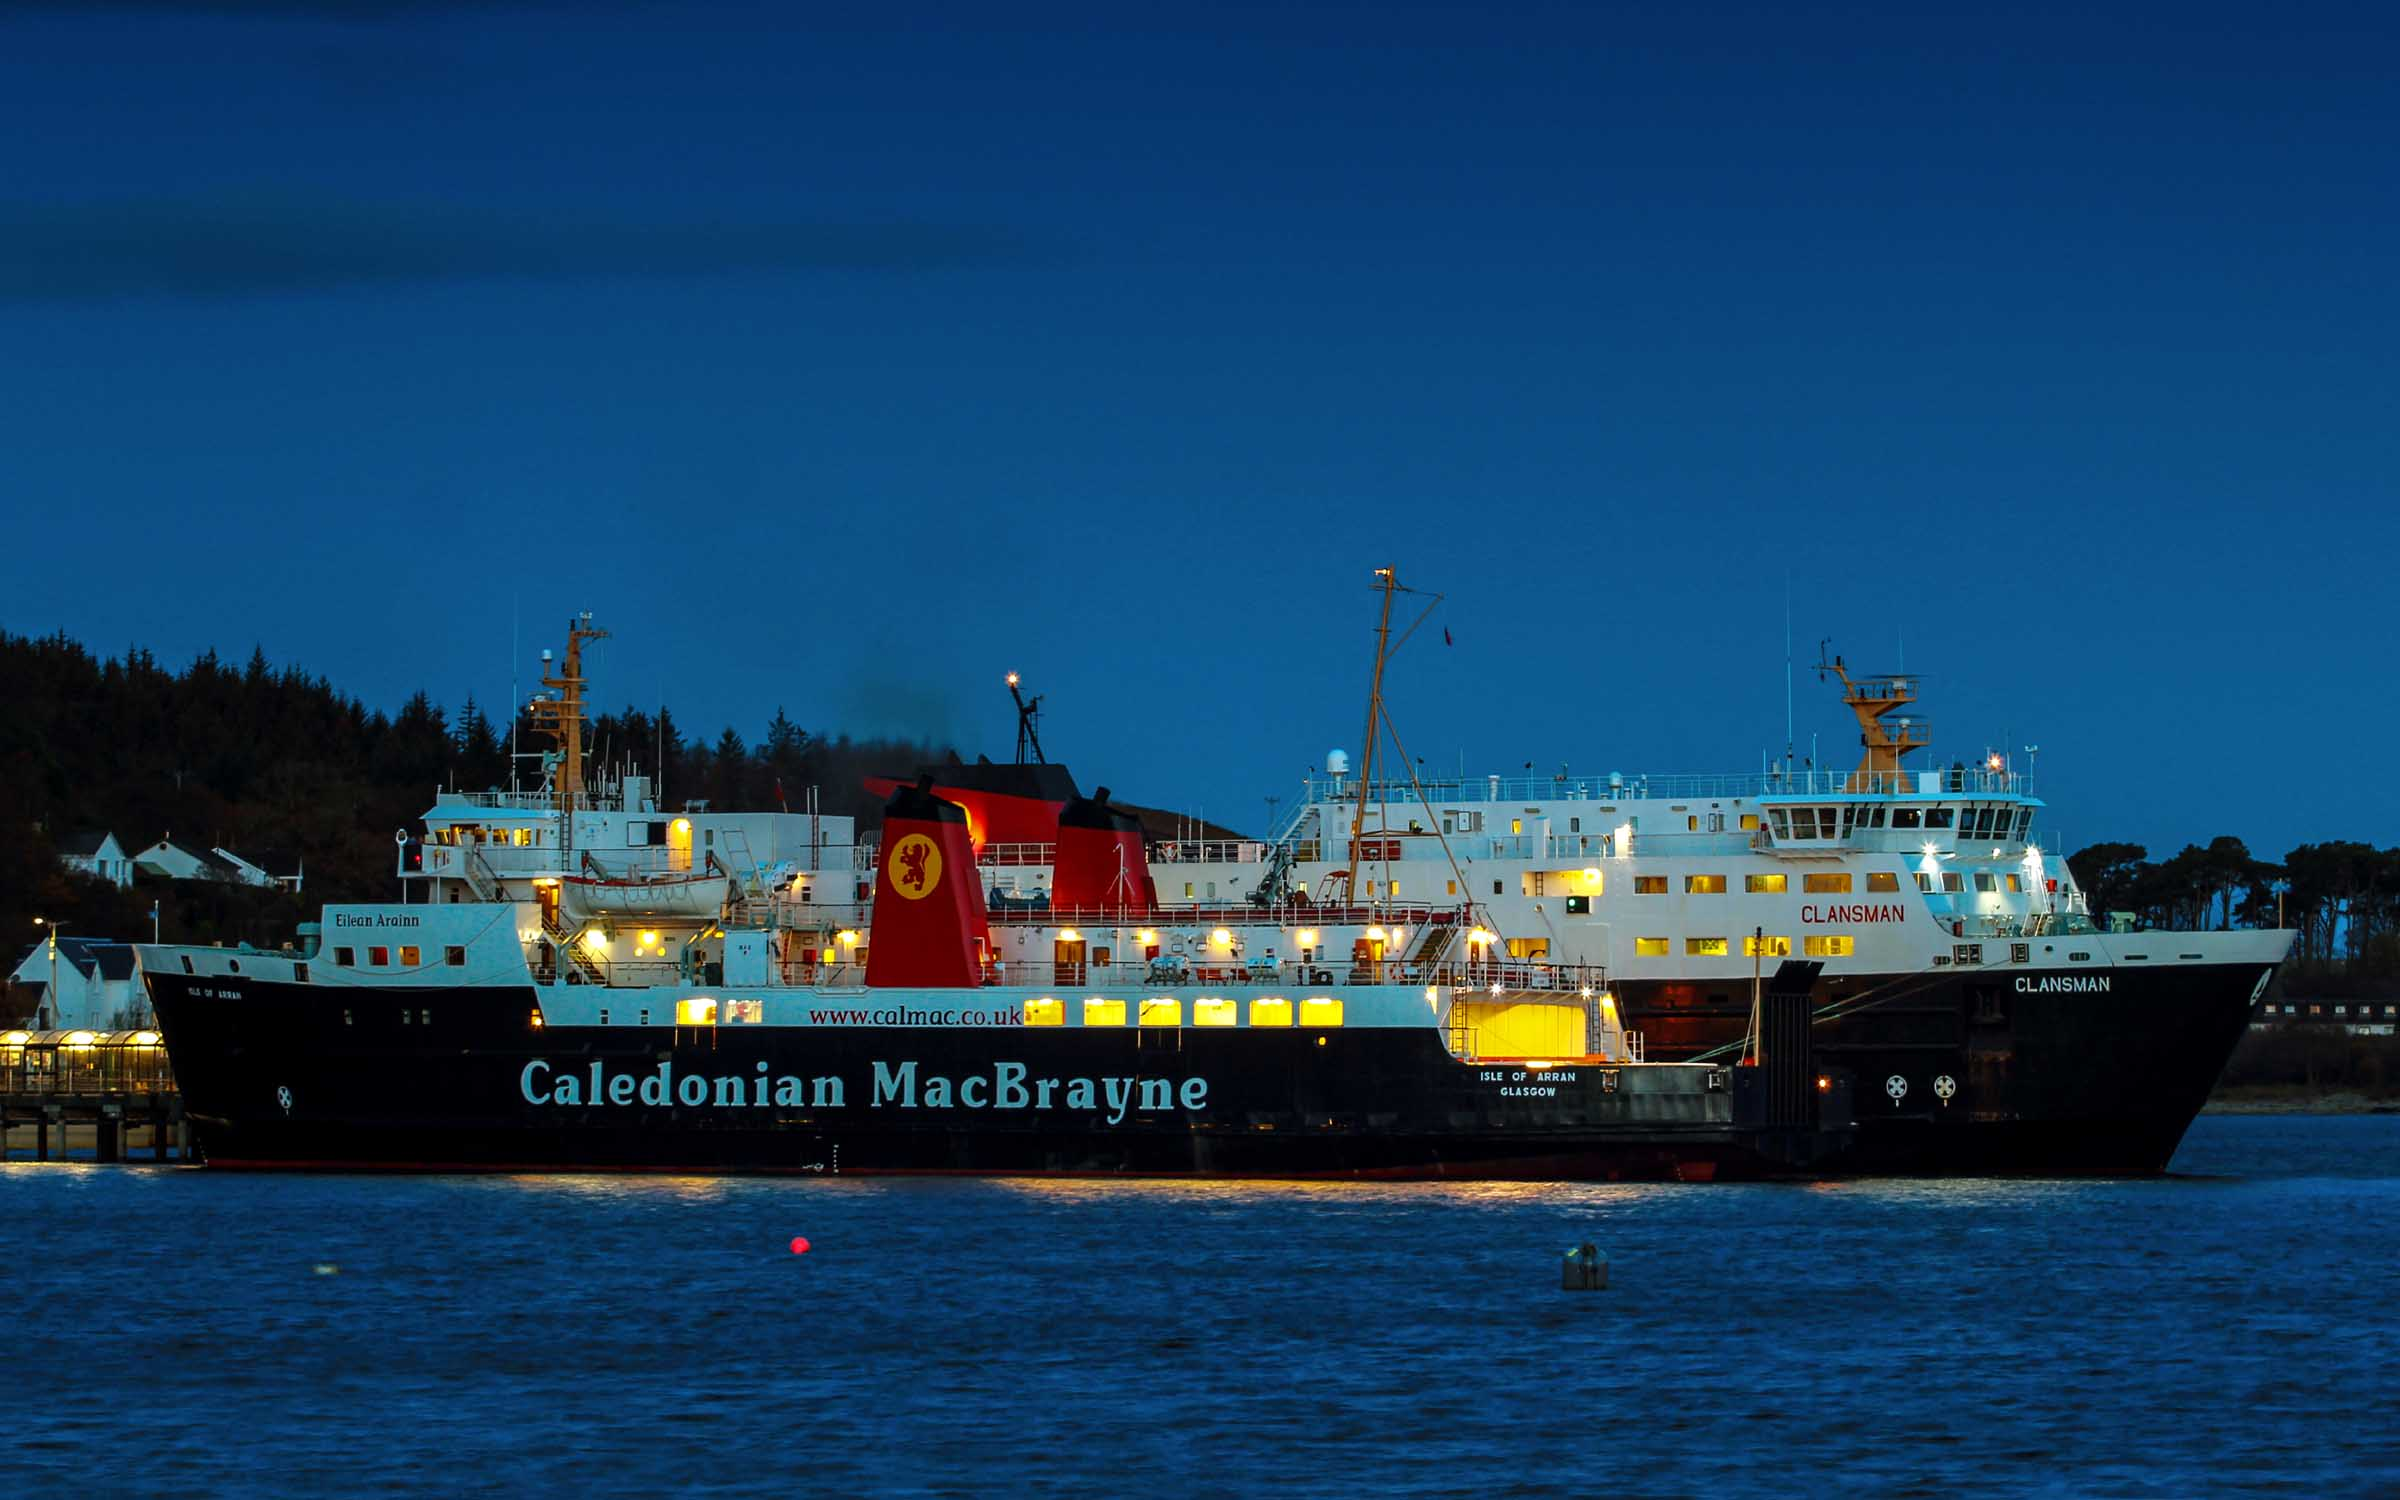 Relief ferries Isle of Arran and Clansman at Craignure (Ships of CalMac)